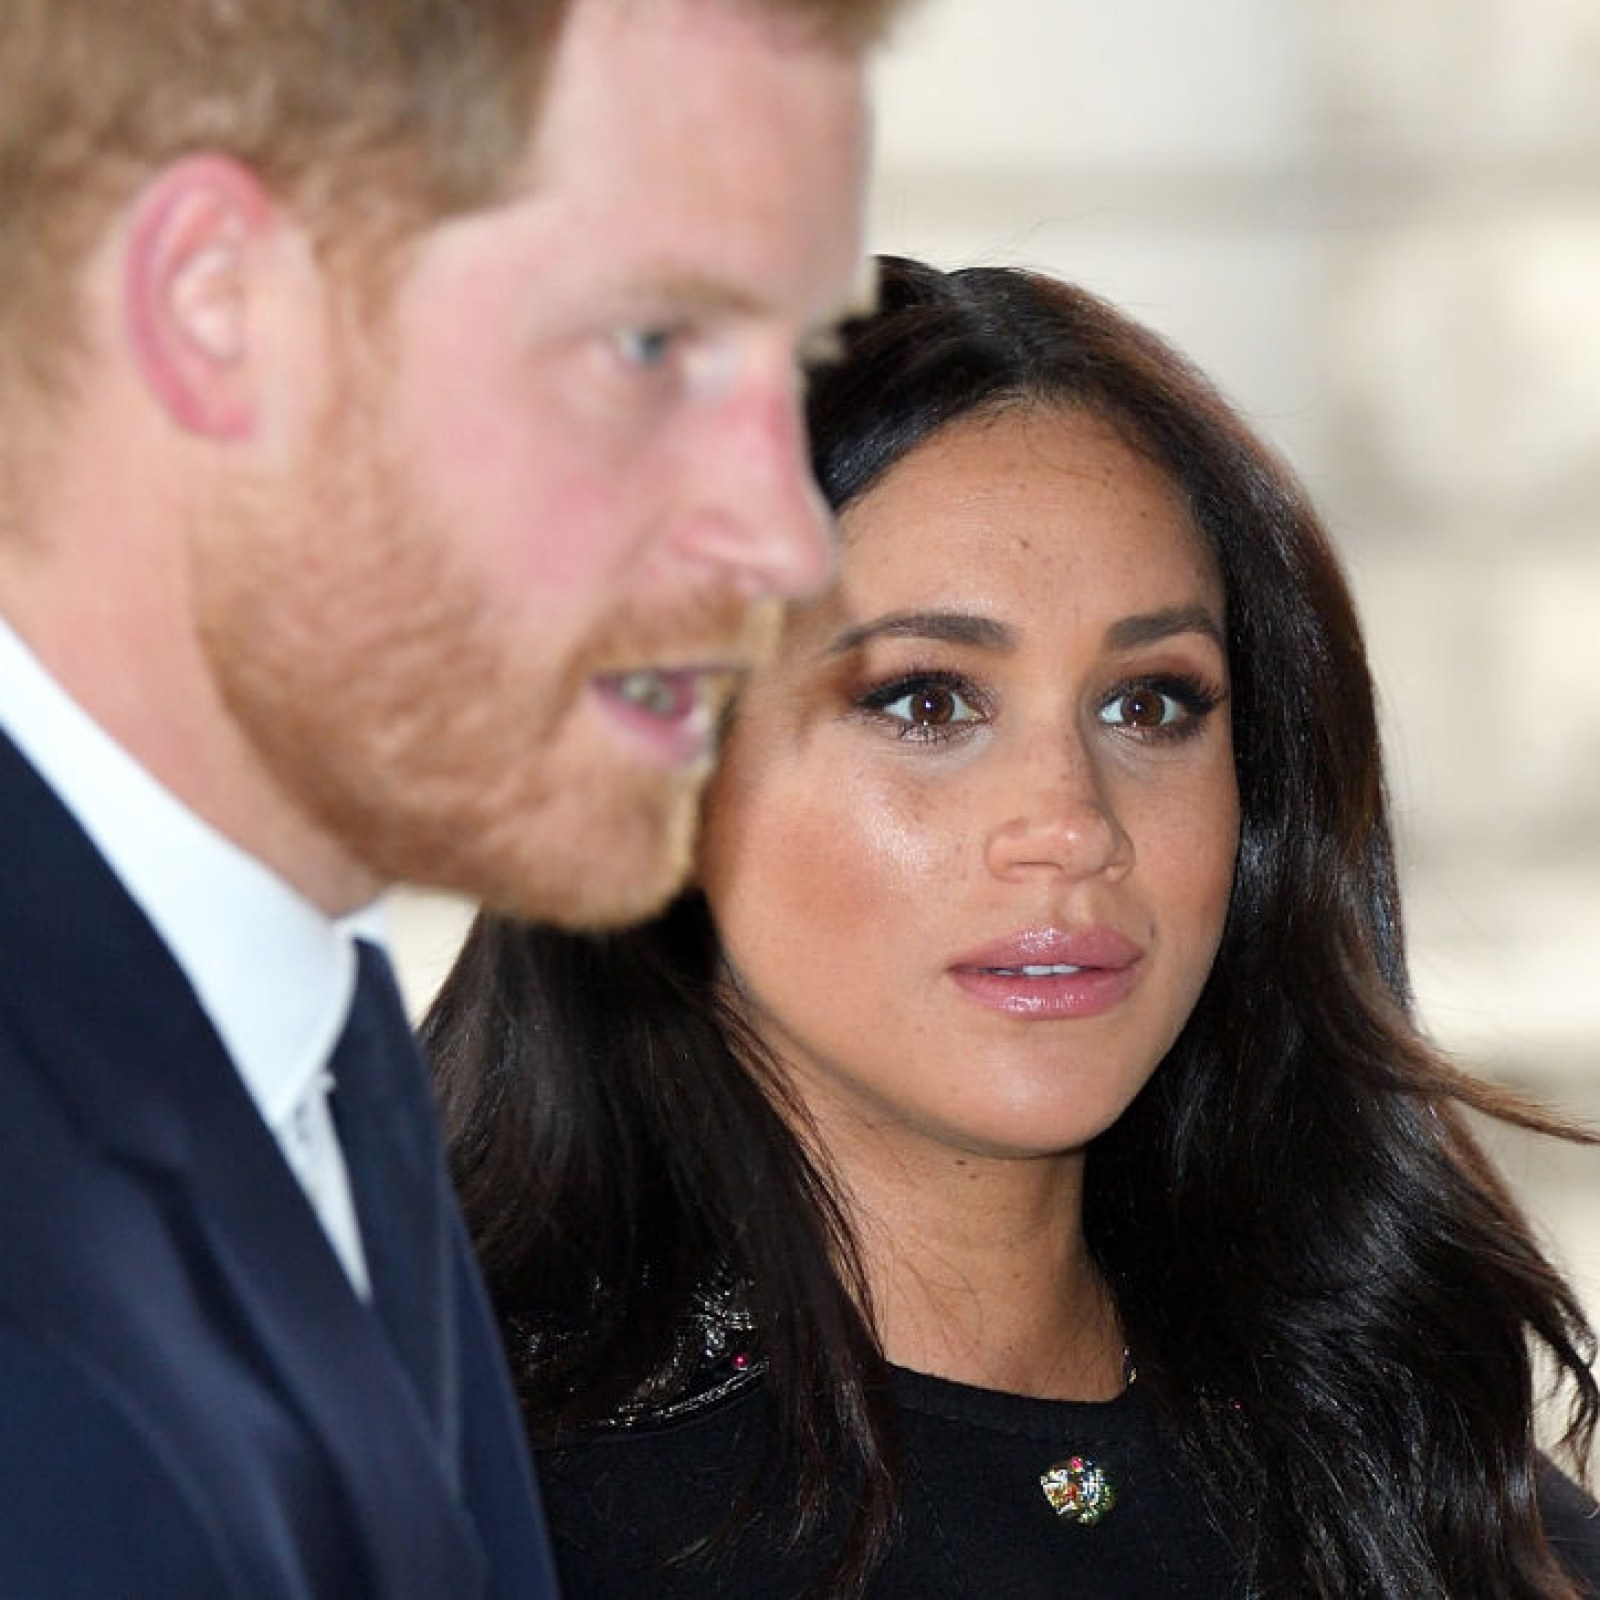 meghan markle and prince harry not using prince charles money for security and still looking for permanent team meghan markle and prince harry not